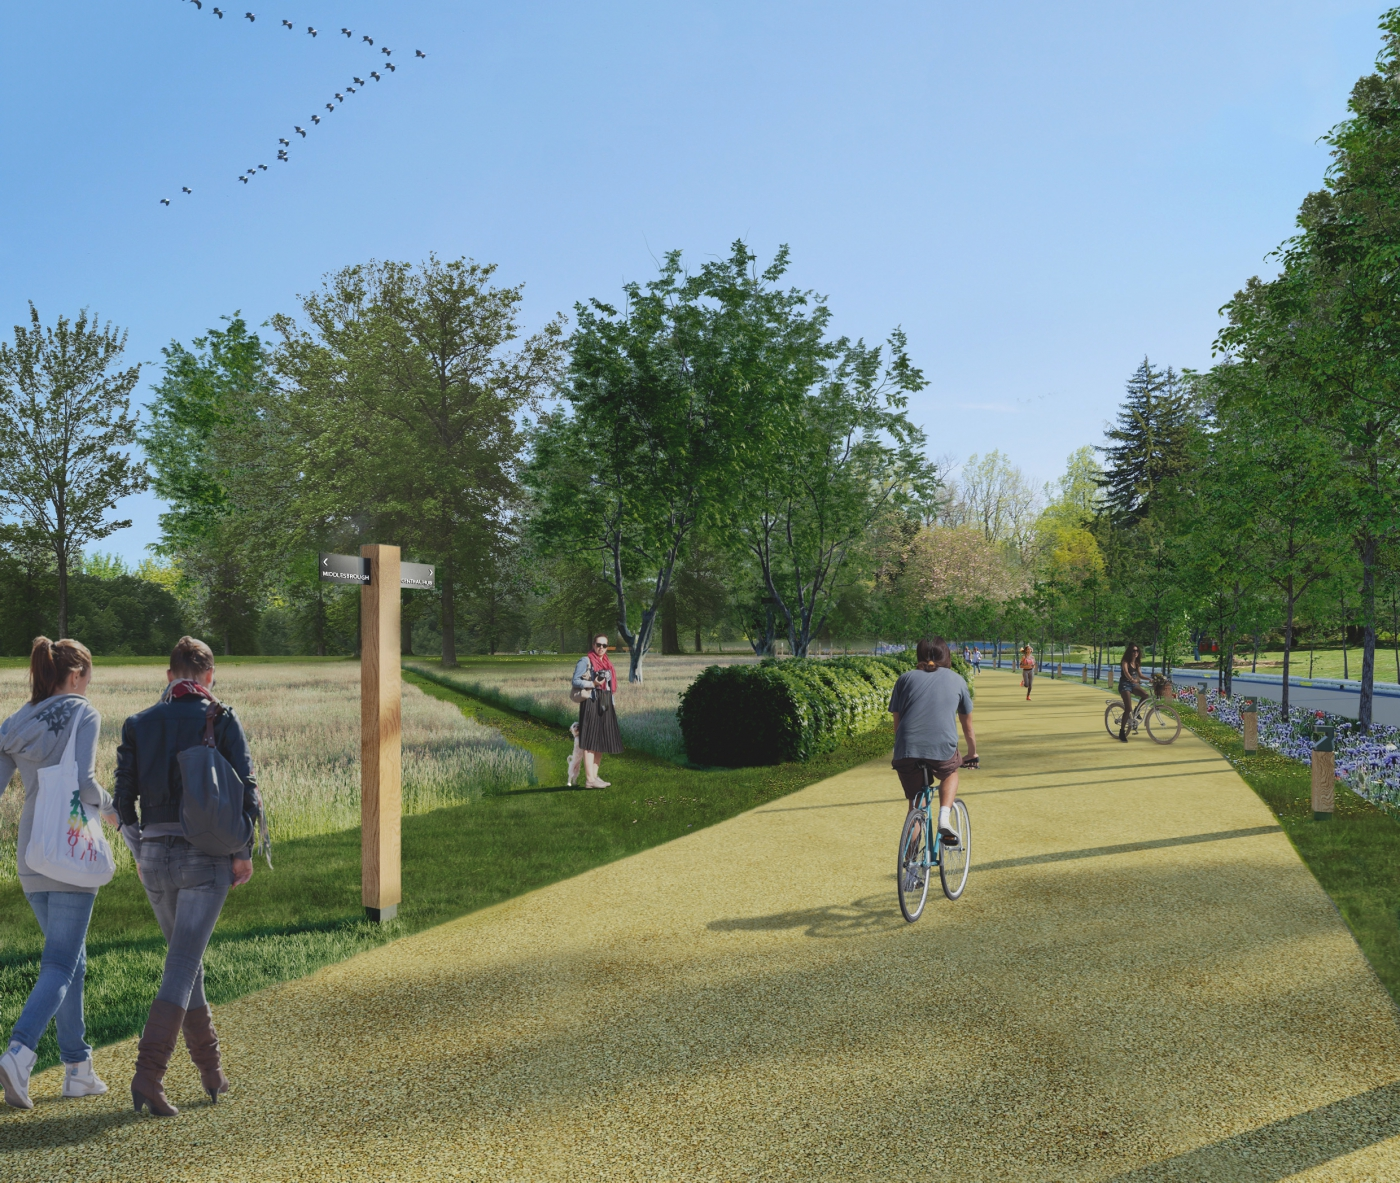 Stainsby Country Park & Masterplan released for public consultation